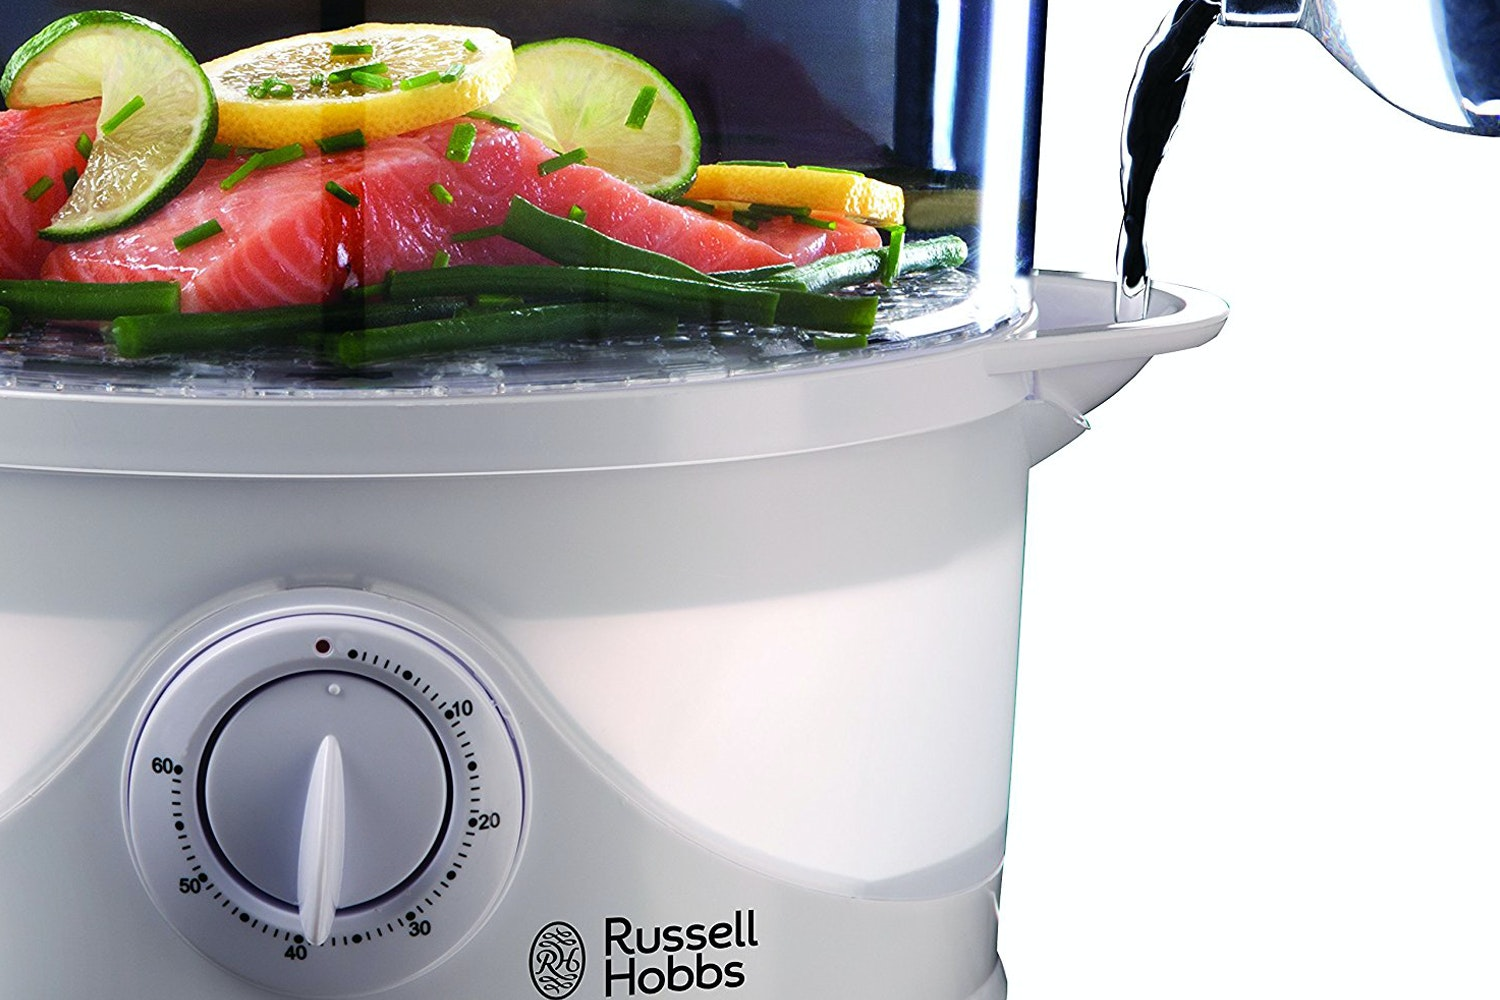 Russell Hobbs 3 Tier Food Steamer | 21140